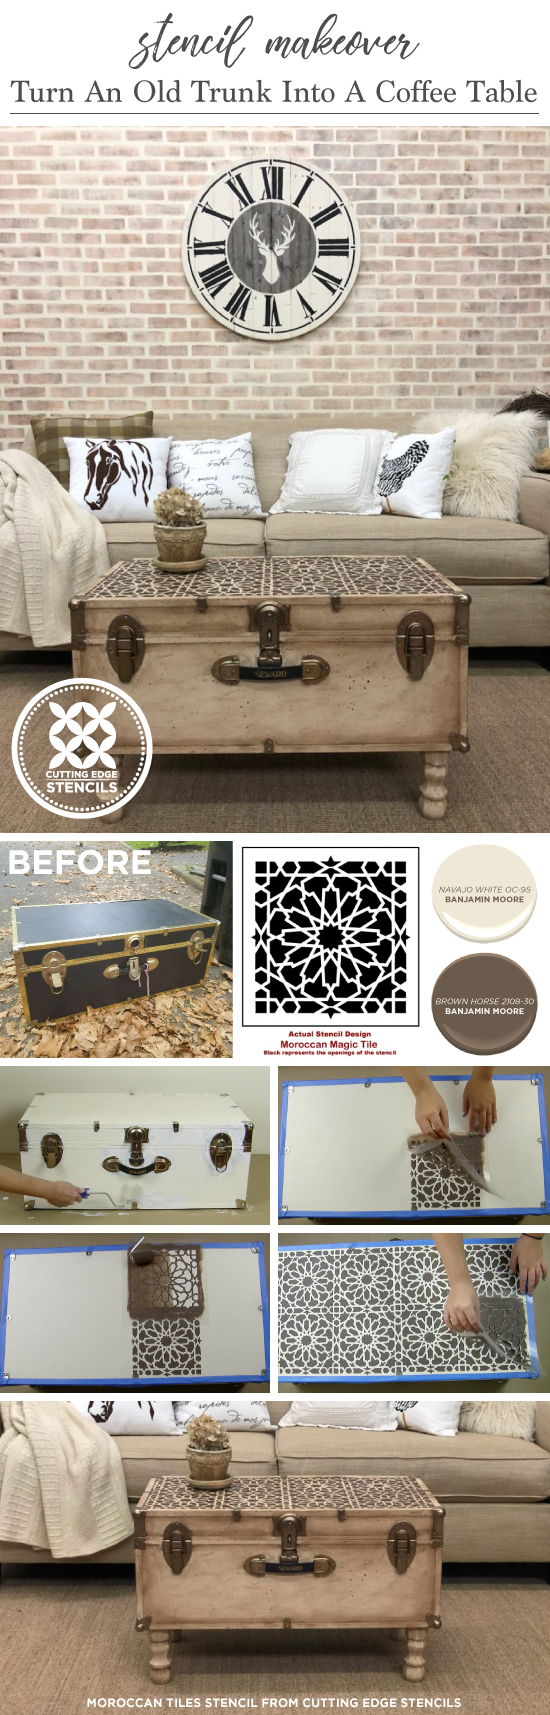 Cutting Edge Stencils Shares How To Makeover Over A Vintage Trunk Into Coffee Table Using